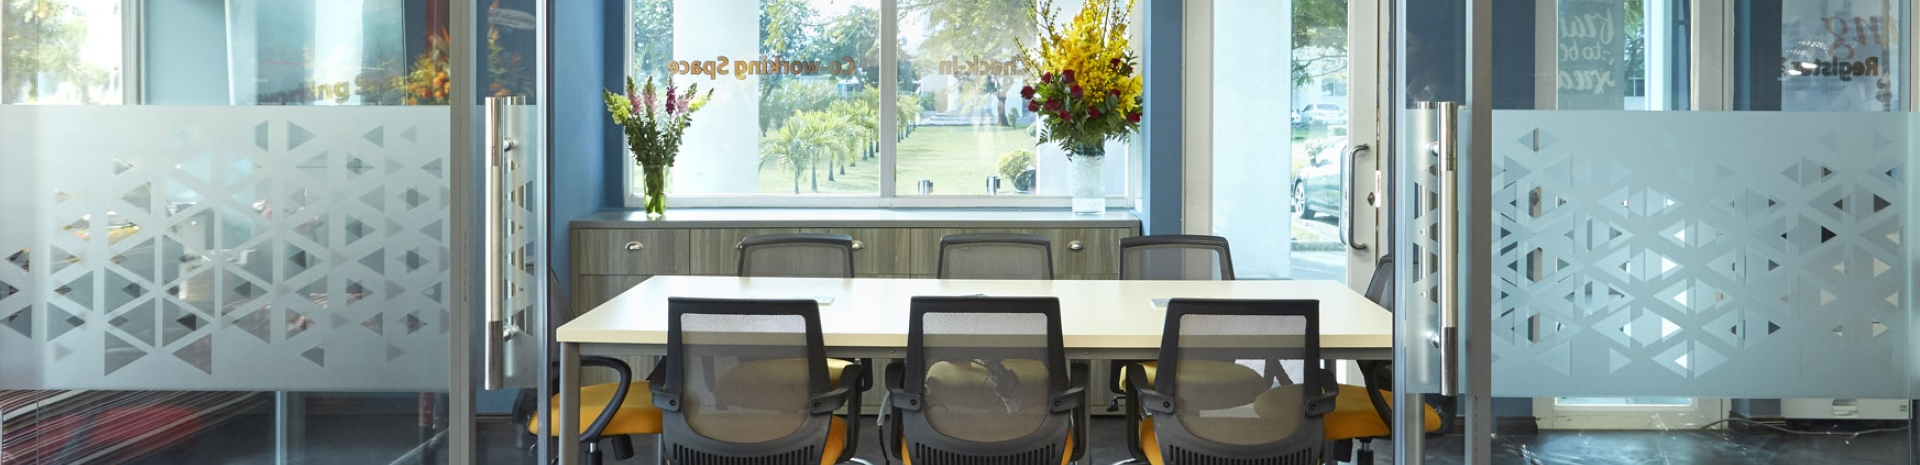 Officespot Coworking, Ho Chi Minh City - Read Reviews & Book Online